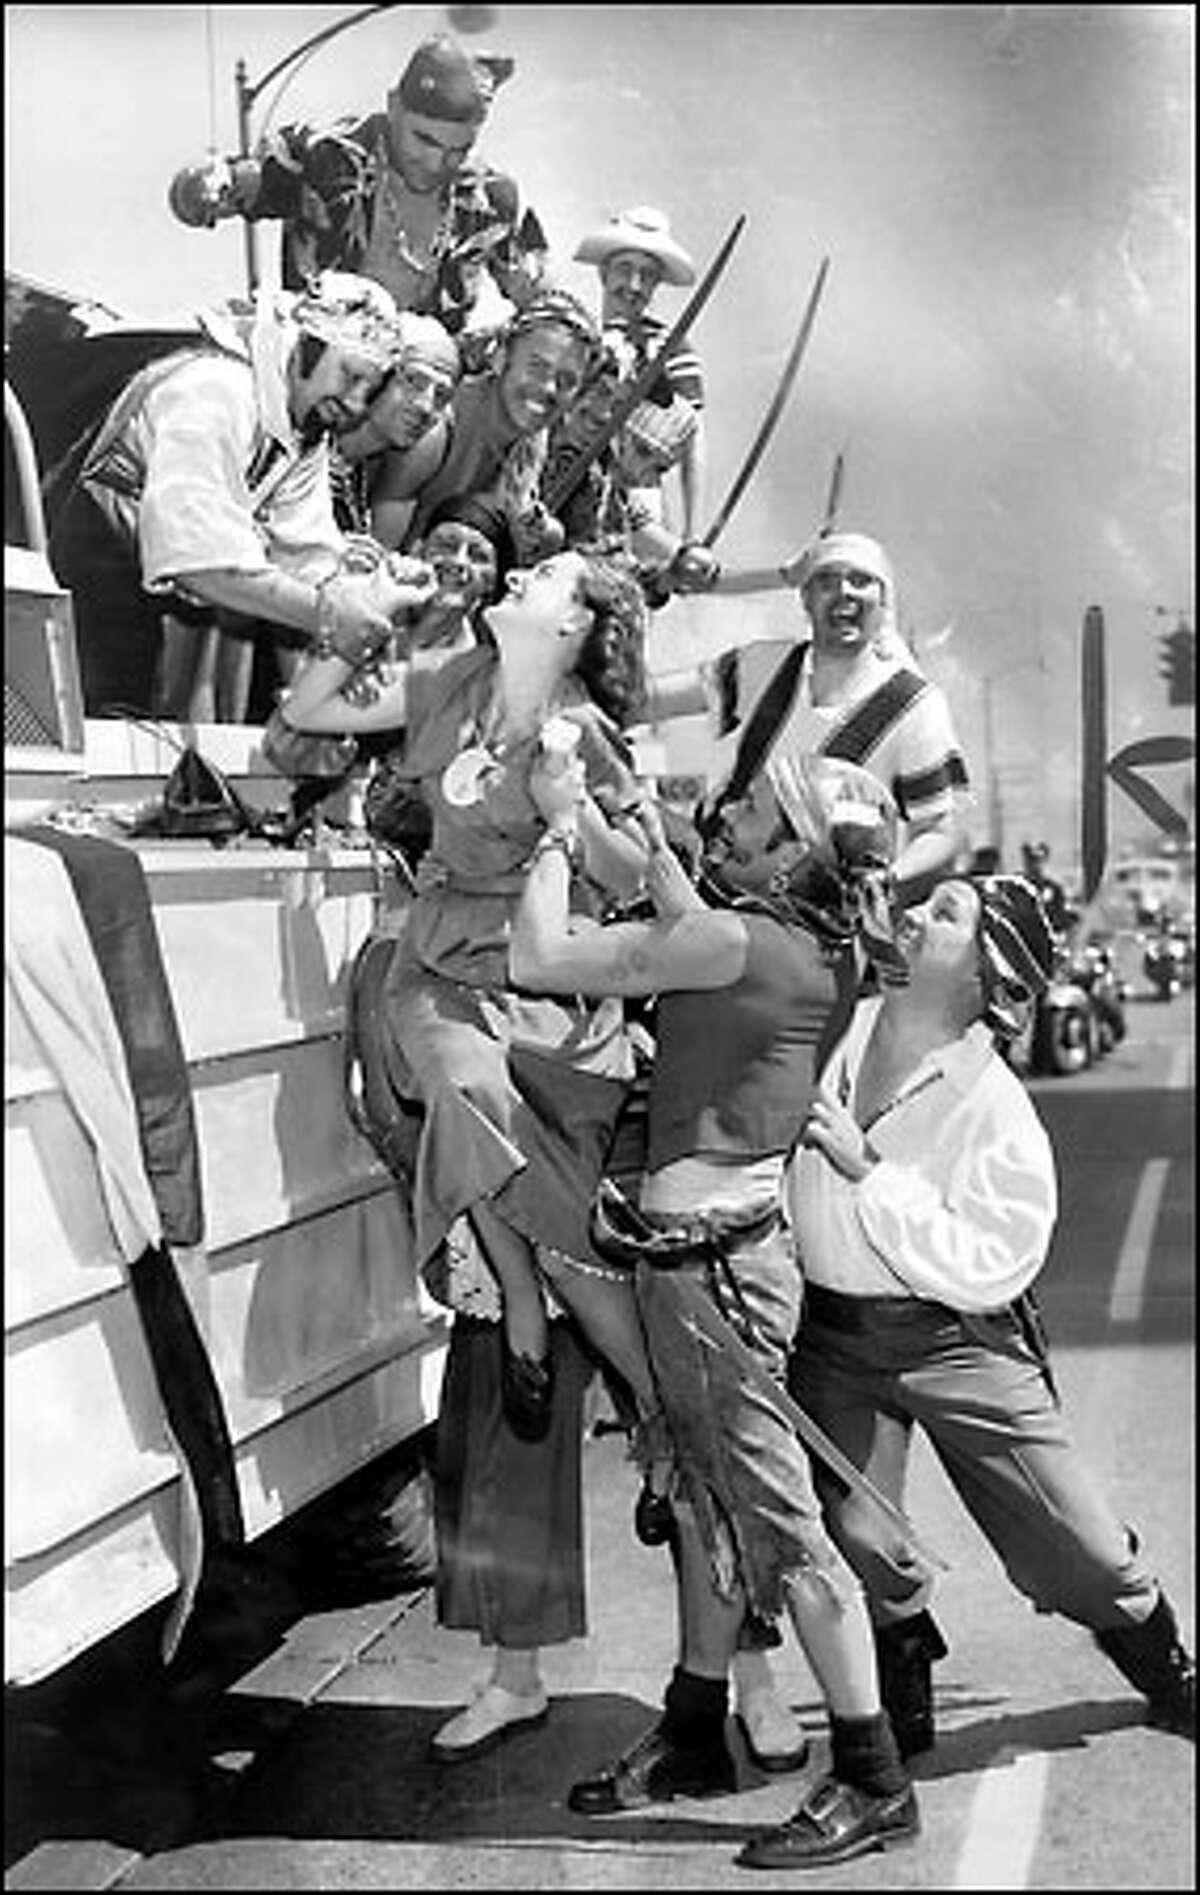 Abduction by Seafair Pirates, 1951: Janet Davis seems to be taking her abduction by Davy Jones and his black-hearted crew of pirates with good humor. After landing at Pier 54, the swashbucklers came ashore and set out to wreak havoc on Aug. 6, 1951. They have made similar mischief at Seafair each year in the 50 years since, except for two years of banishment in 1967 and 1968. The Pirates are known for invading ports, threatening children, burning ships, brandishing large swords and shooting off cannons.